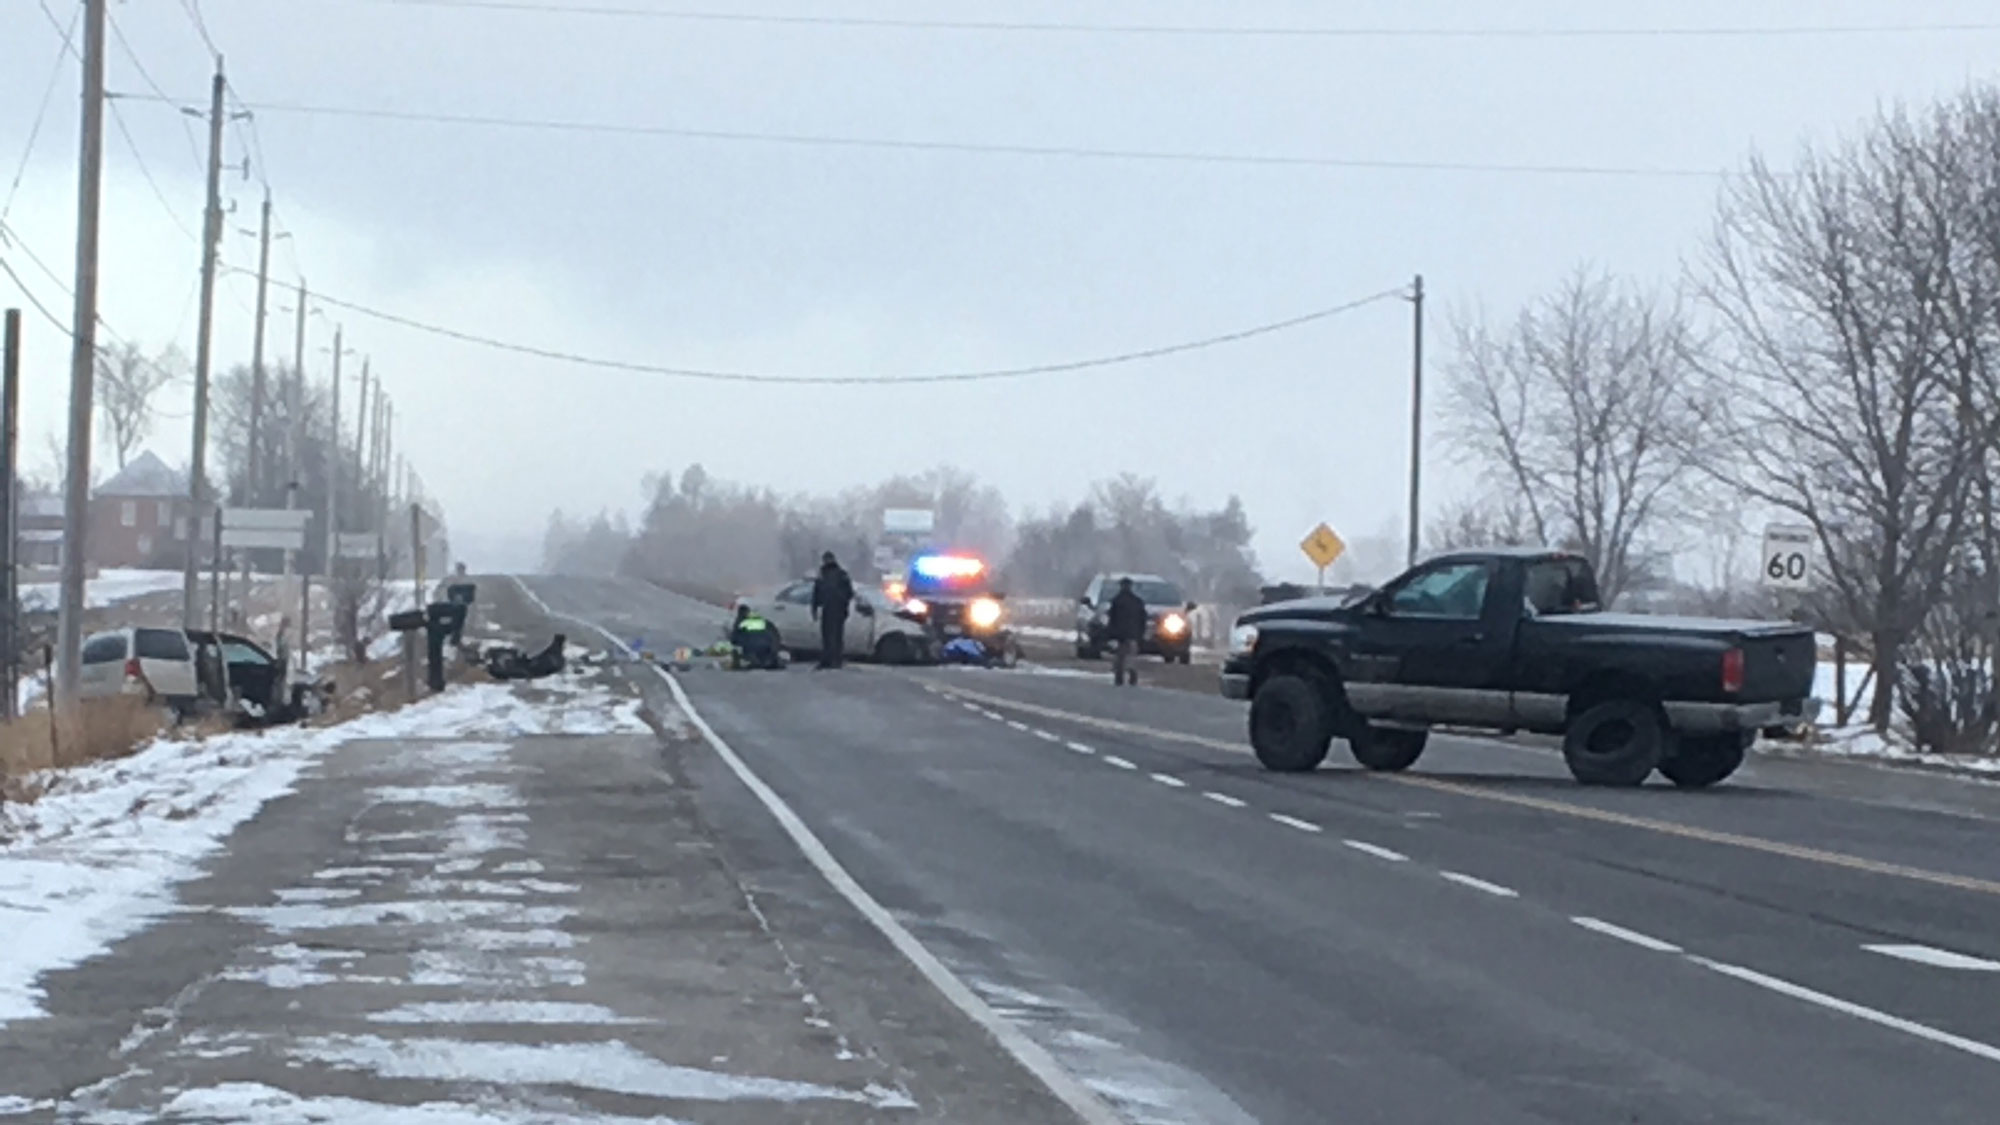 Three vehicles were involved in a crash at King and Airport roads in Caledon on Feb. 2, 2018. CITYNEWS/Bryan Carey